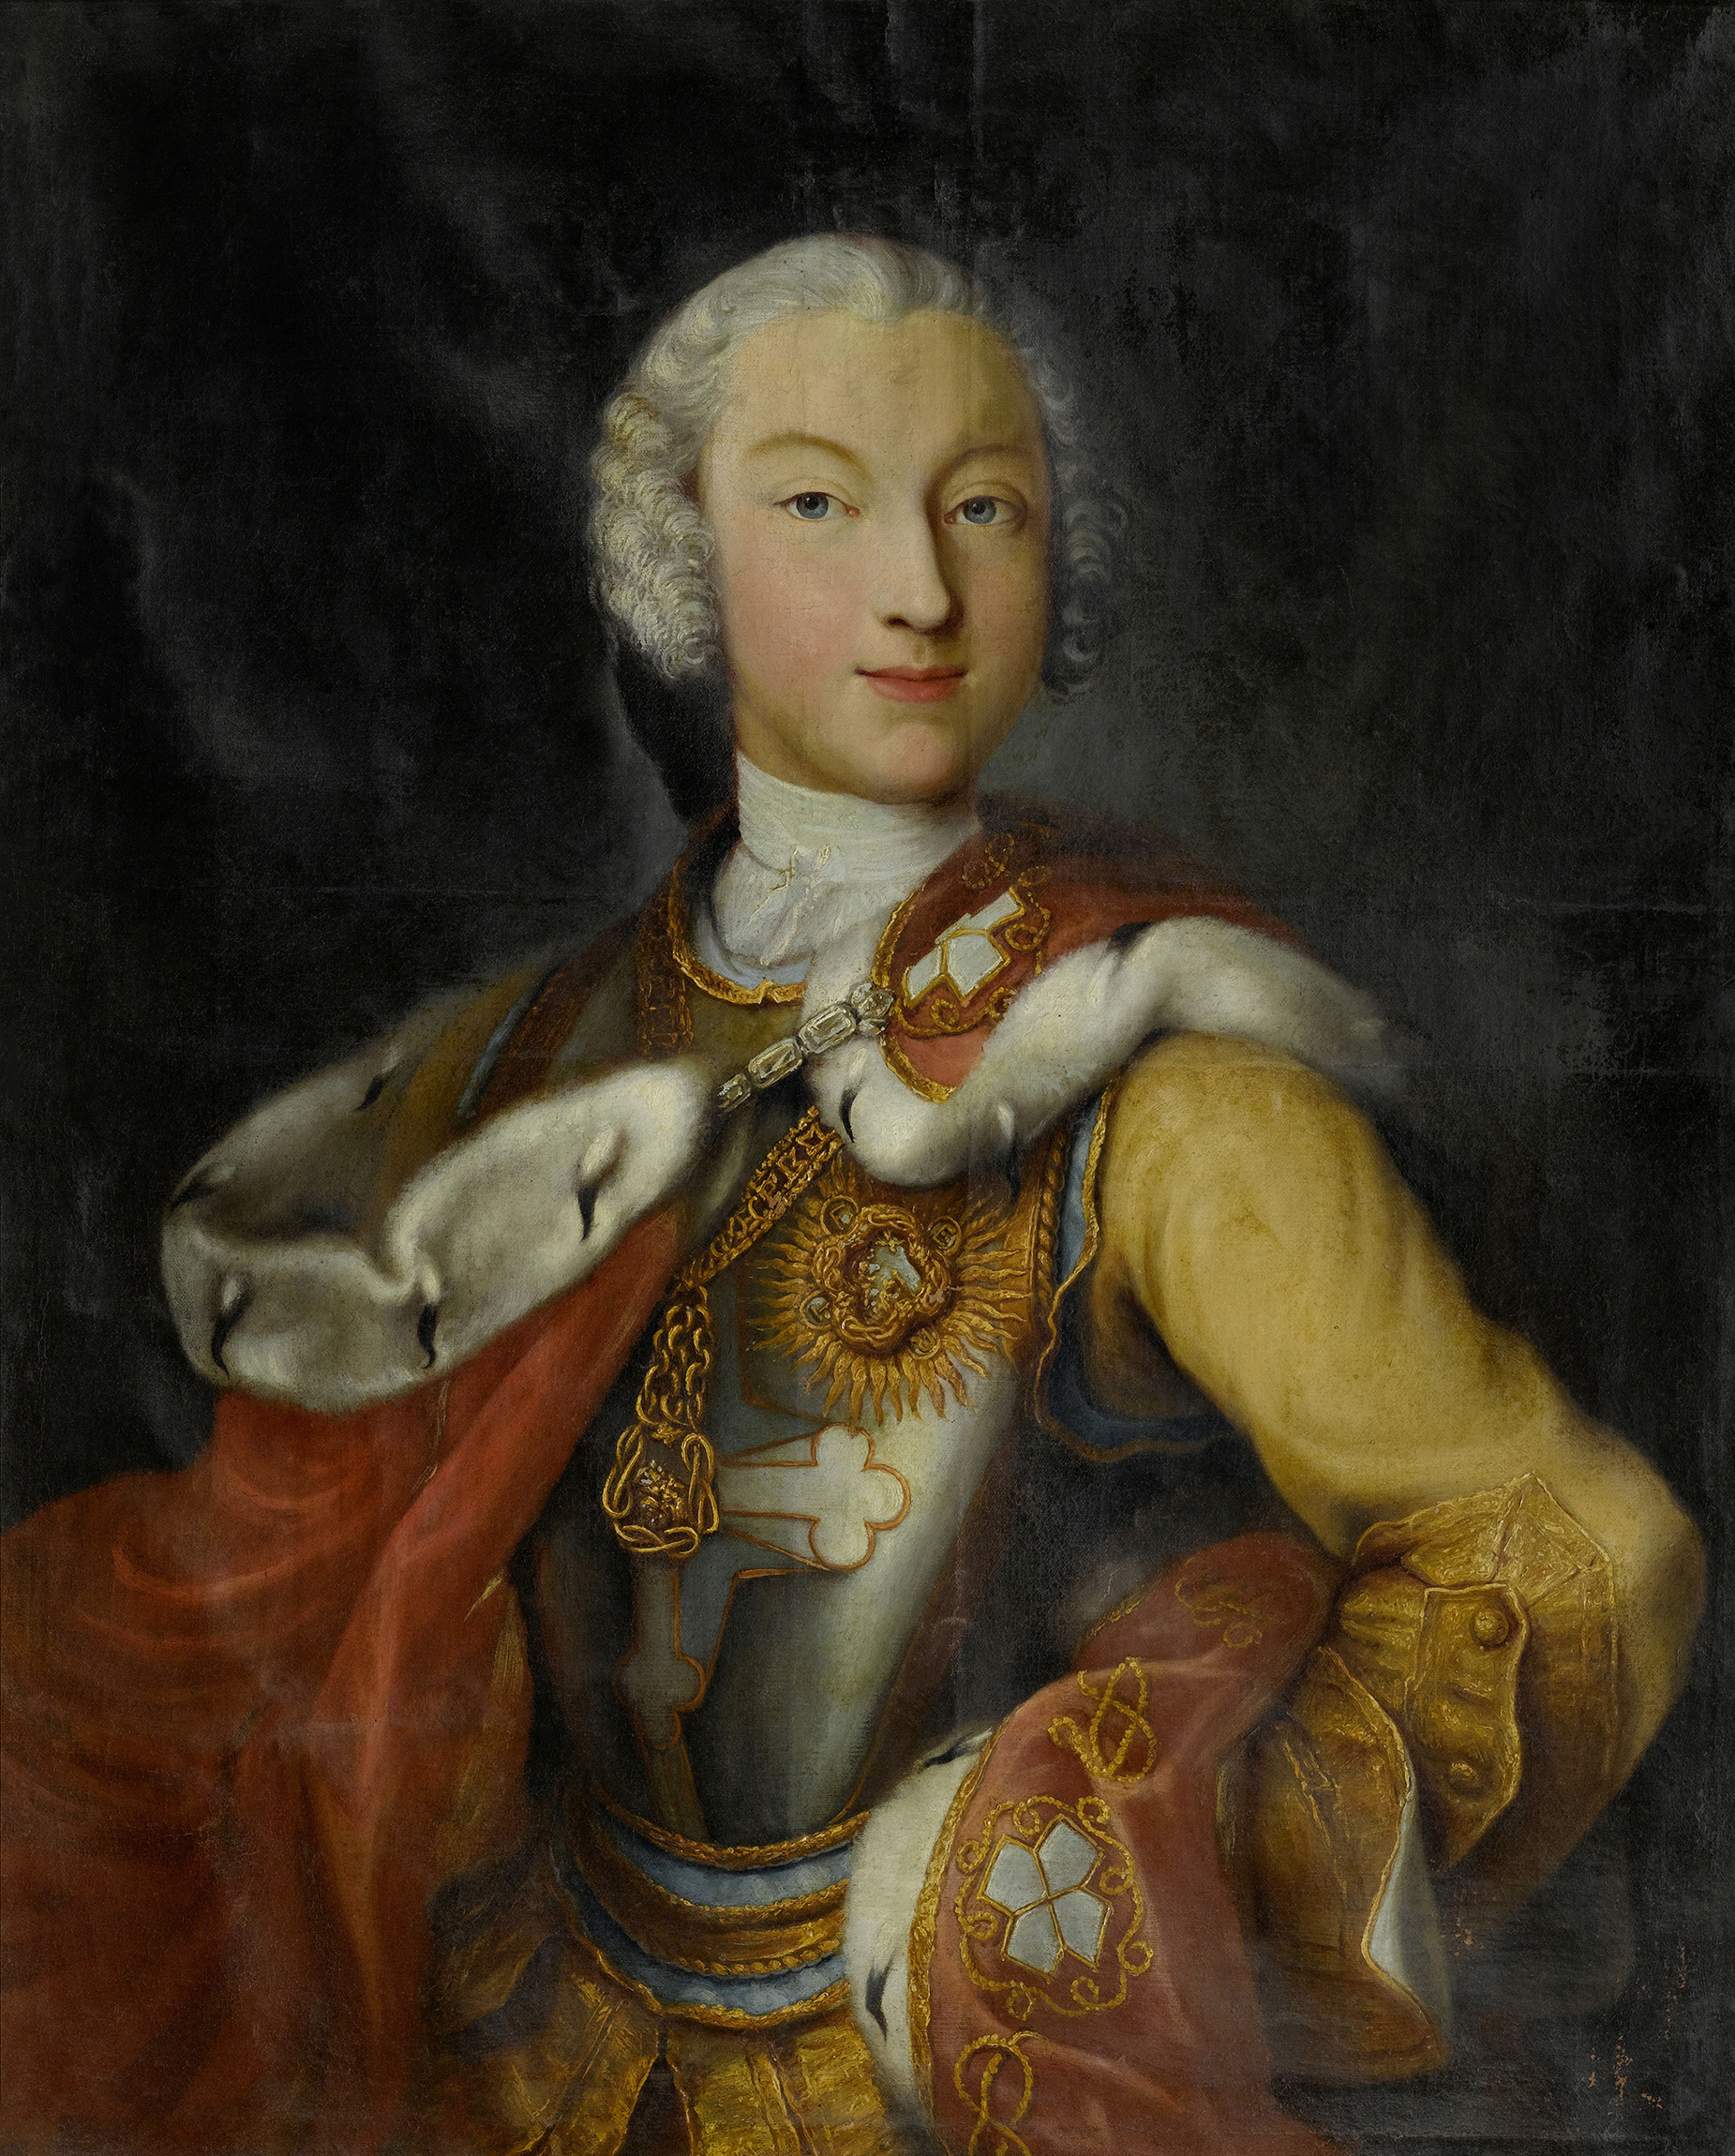 Portrait of Charles Emmanuel III (1701-1773), King of Sardinia and Duke of Savoy (1730-1773), 1729 | Portraits of Kings